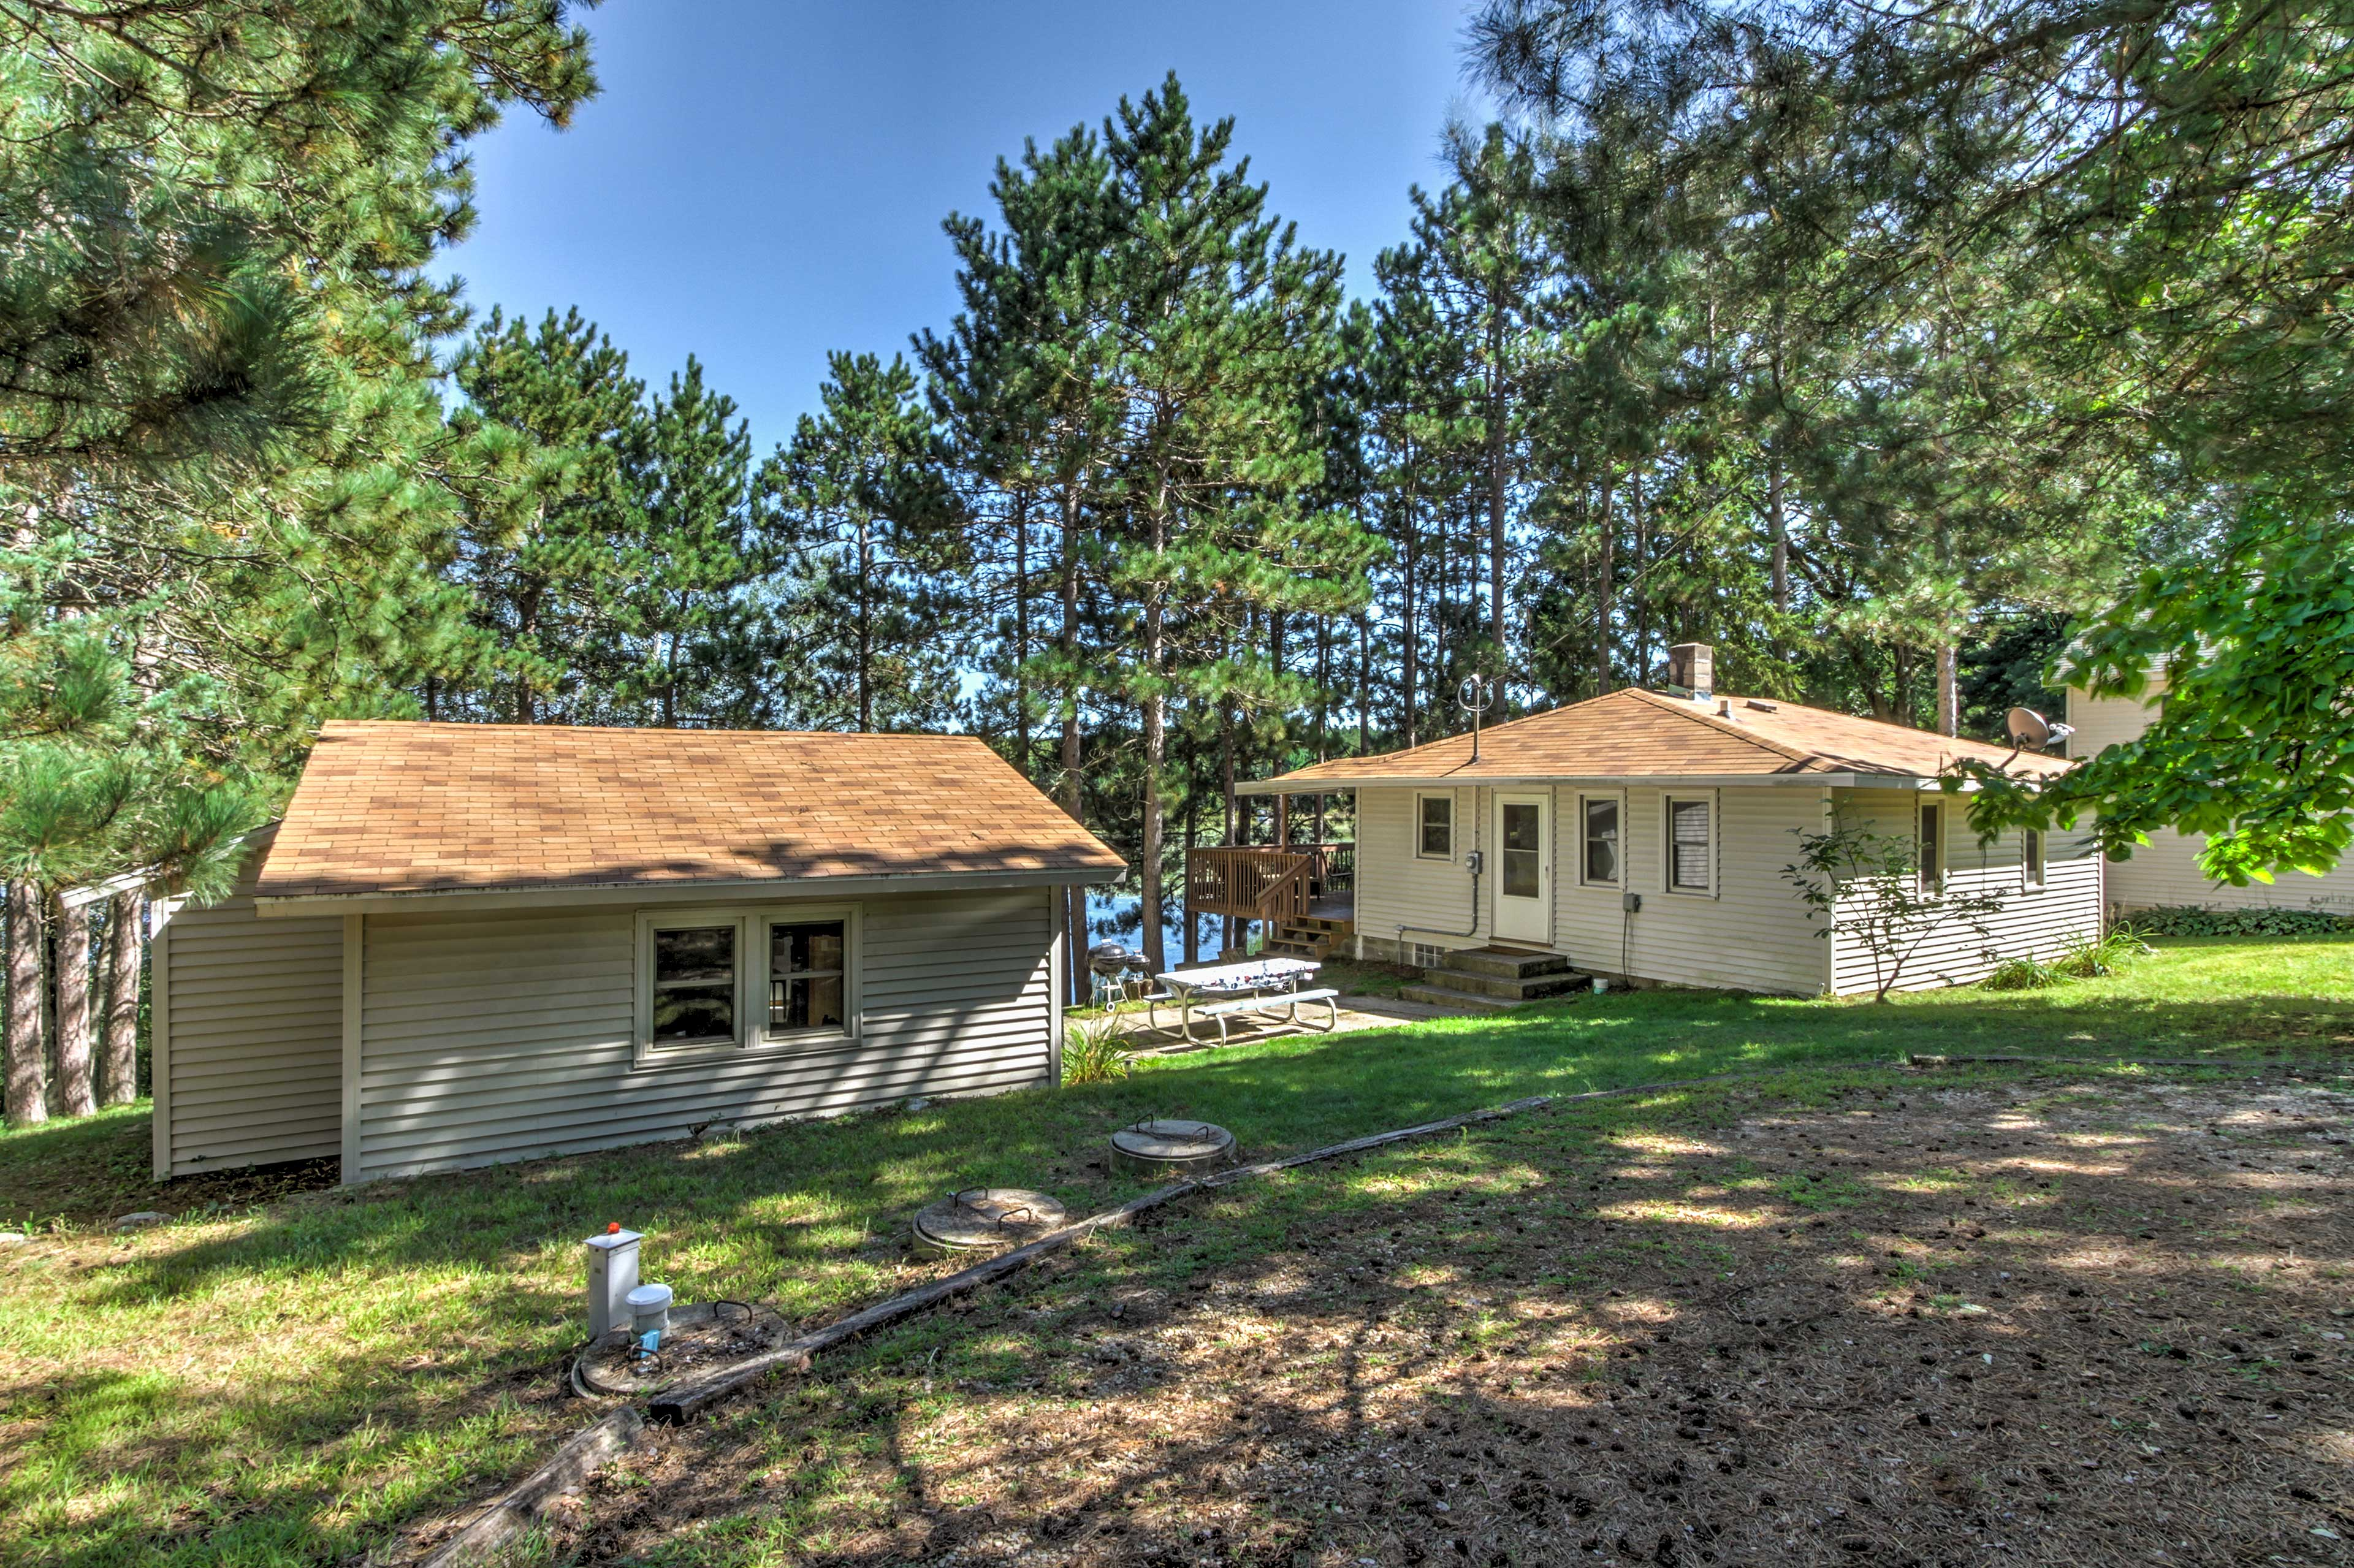 The property is shared with Evolve listing number 369083, which accommodates 2.